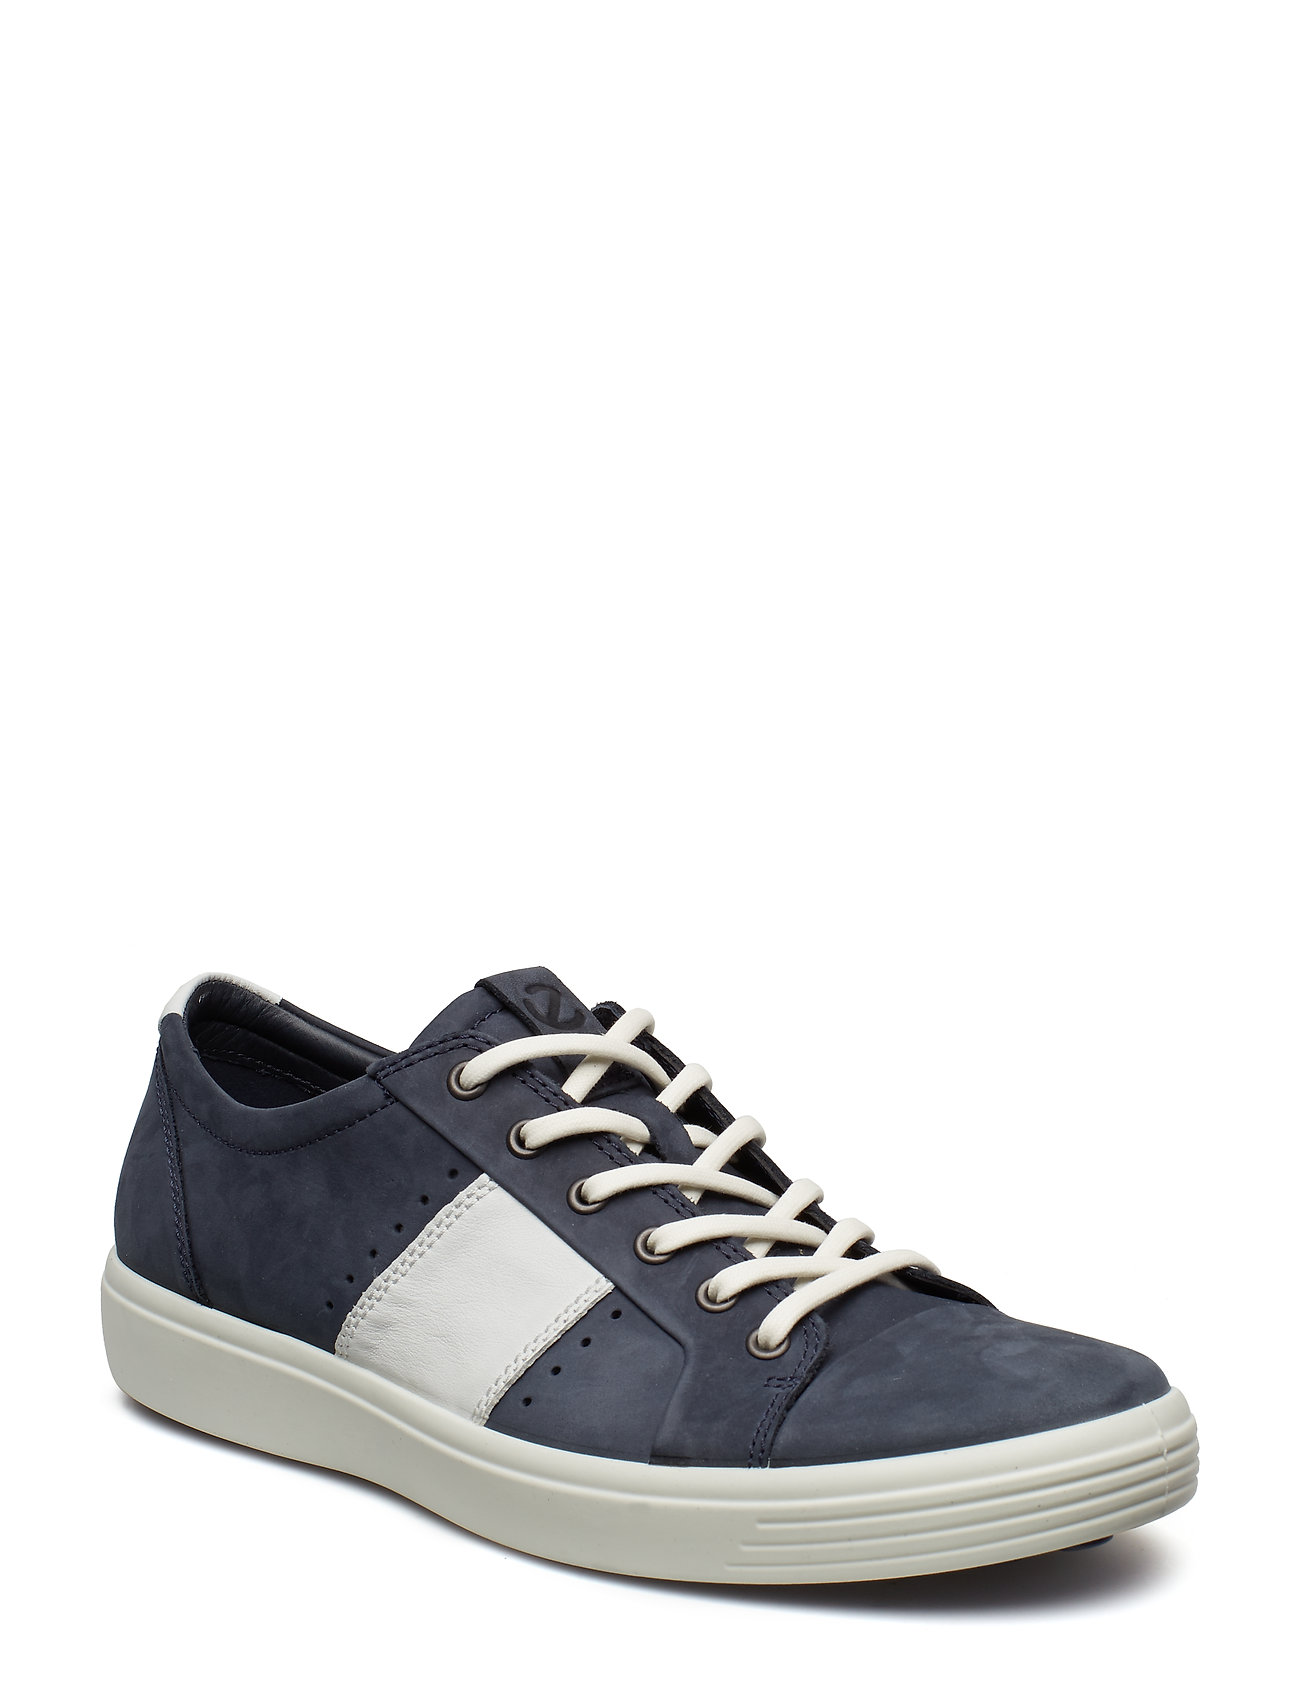 Image of Soft 7 M Low-top Sneakers Blå ECCO (3125213053)